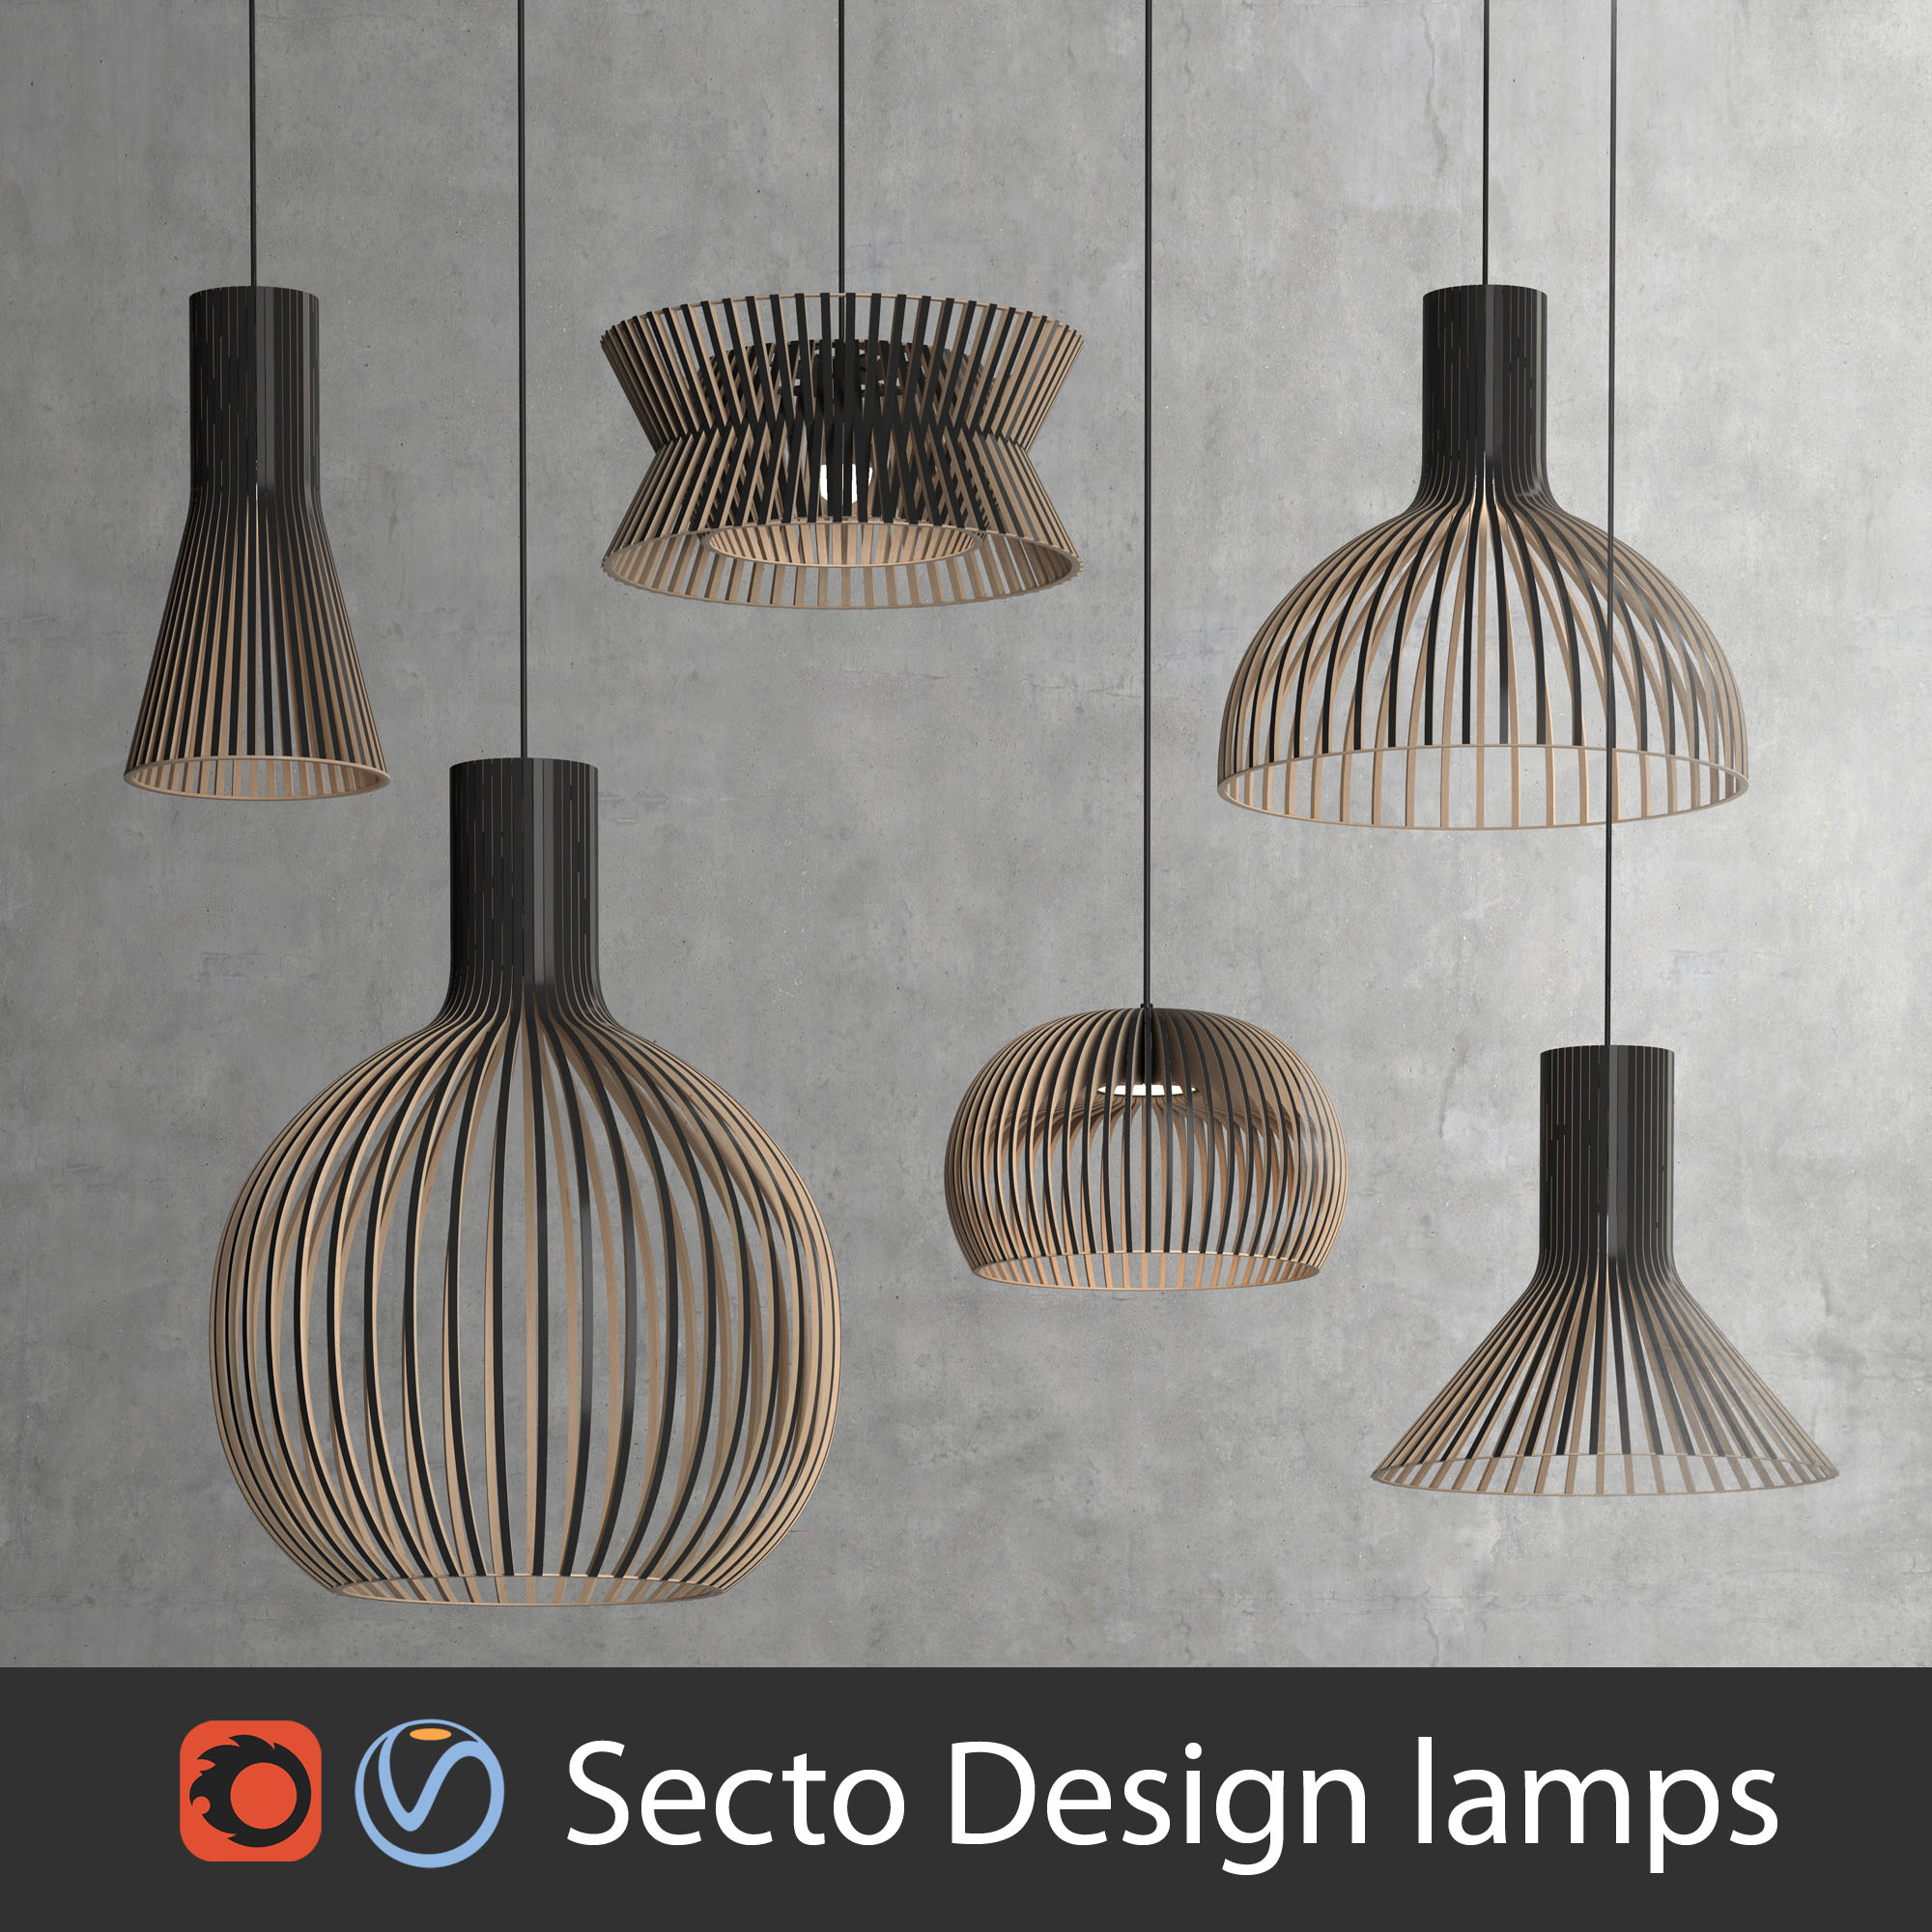 Scandinavian Finnish Secto Design Interior Lamps Set Vray And Corona